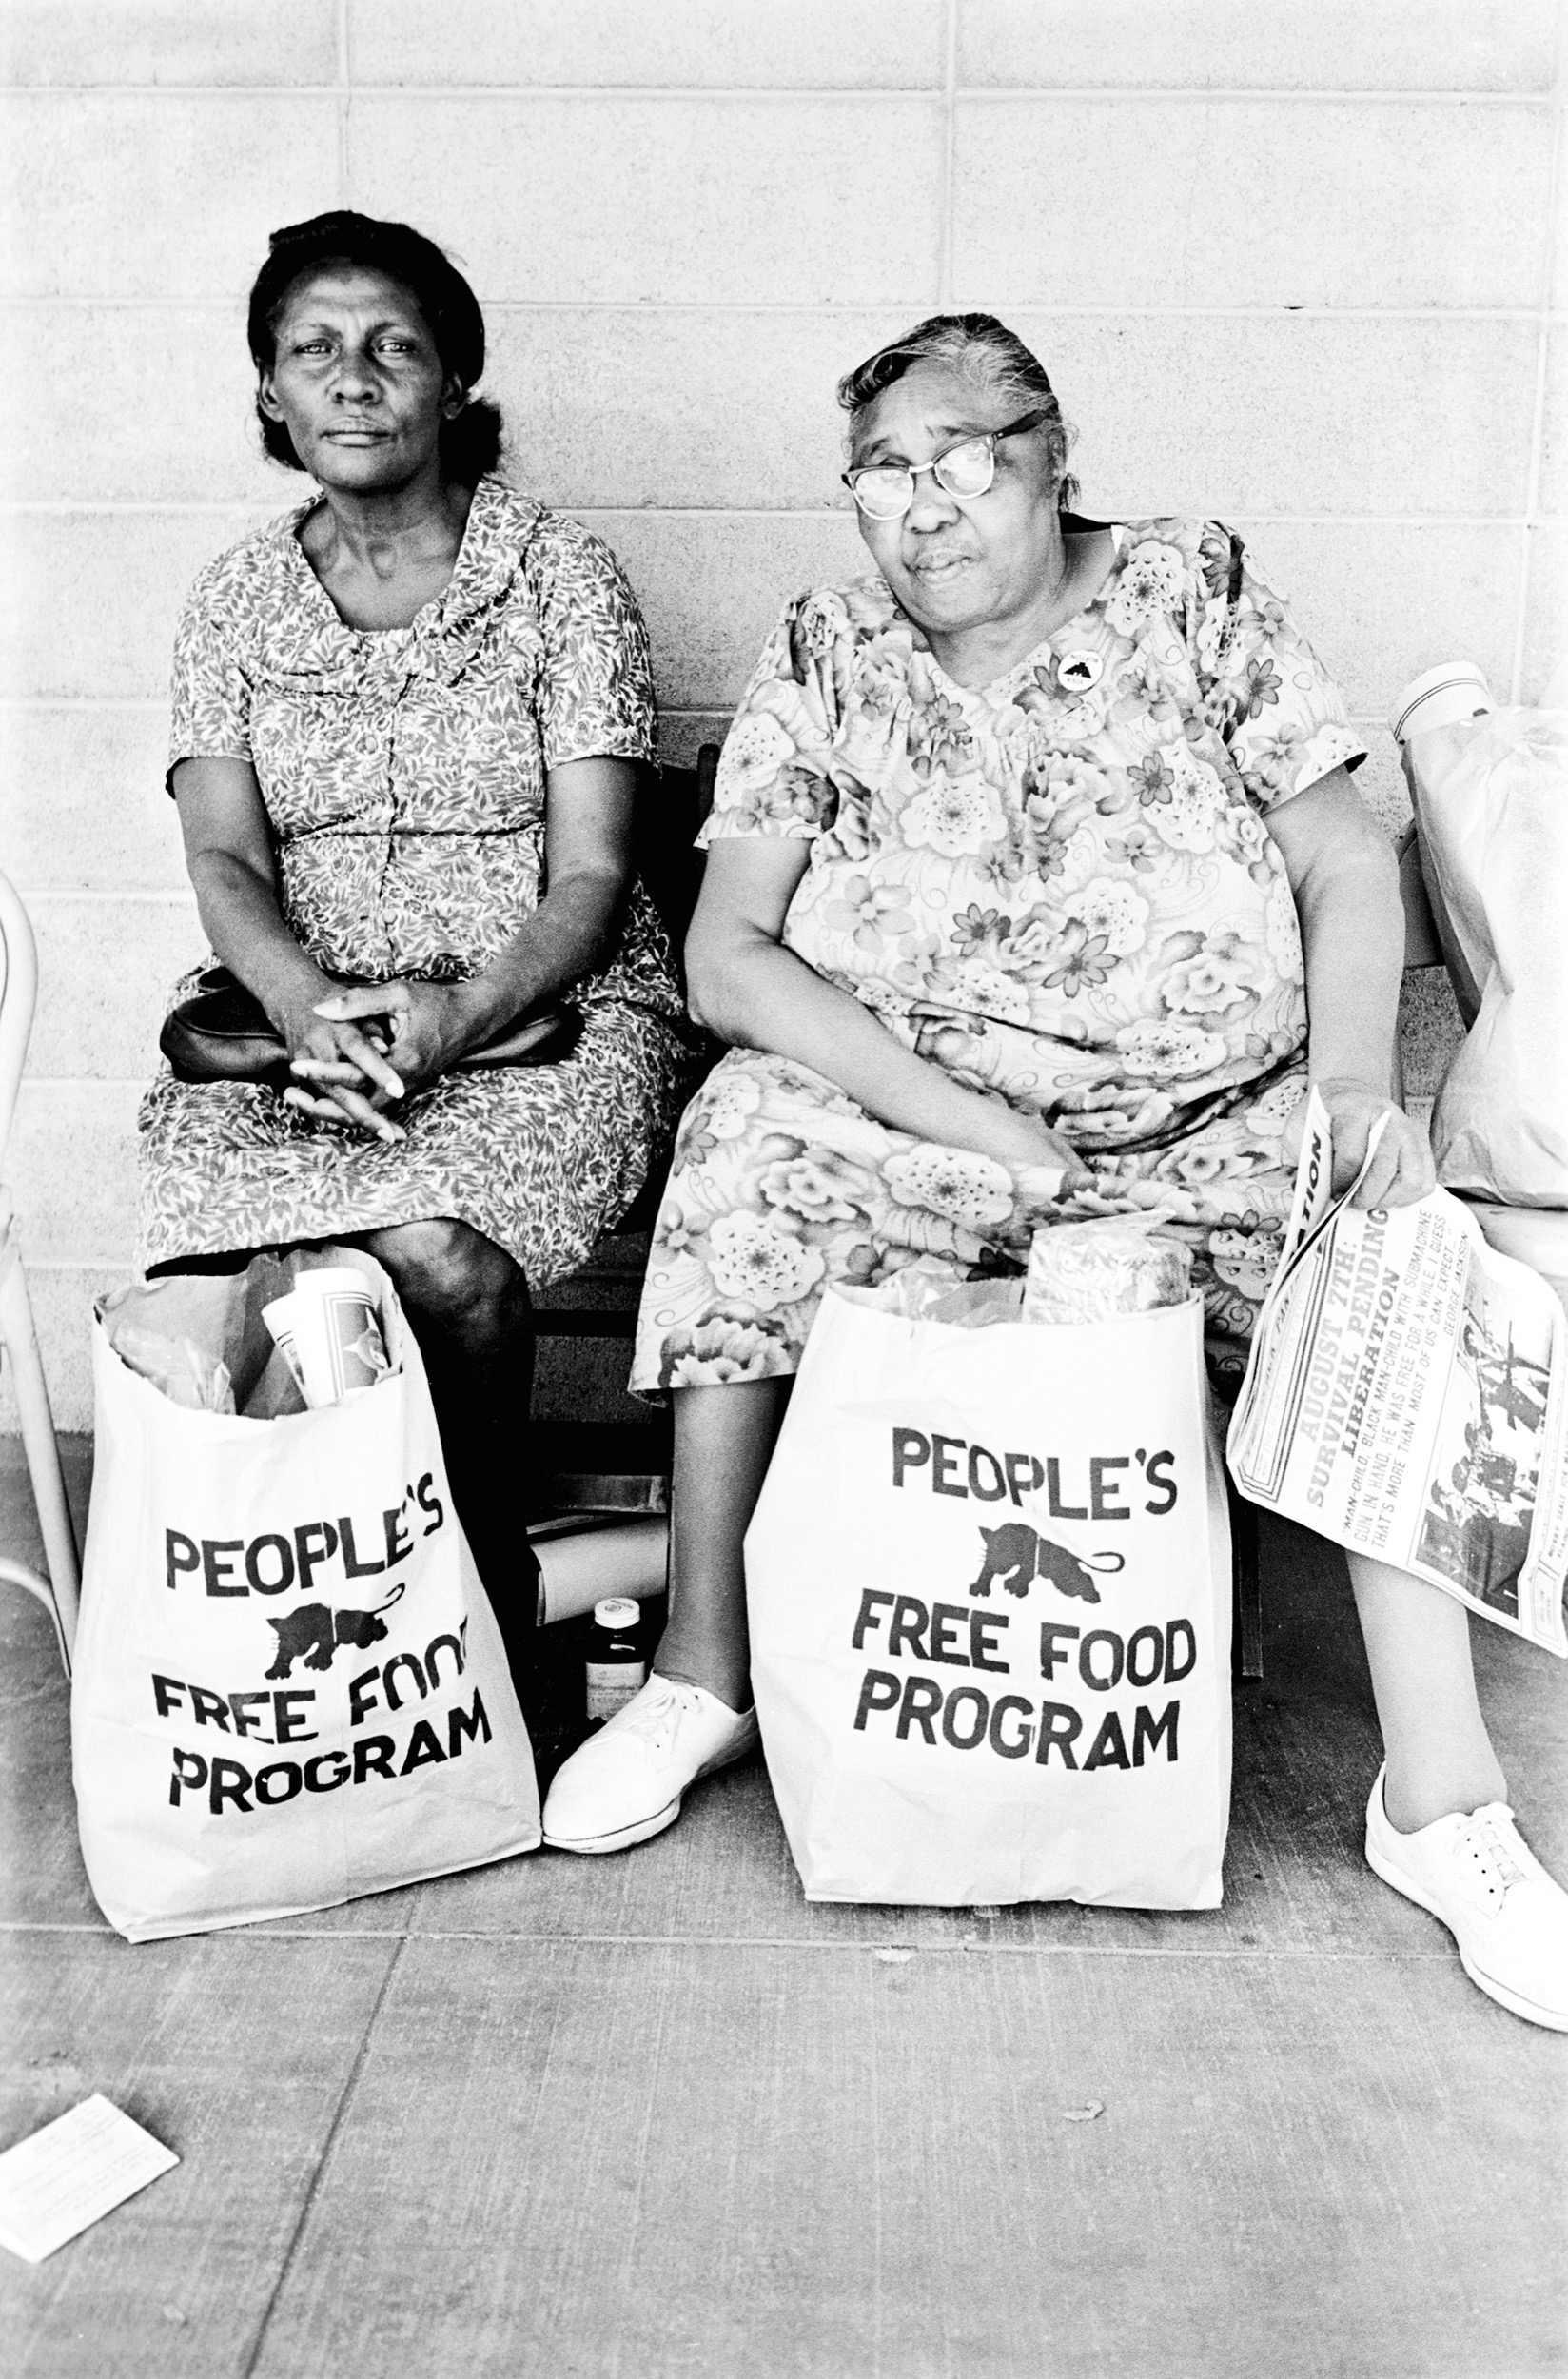 People's Free Food Program, Palo Alto, 1972